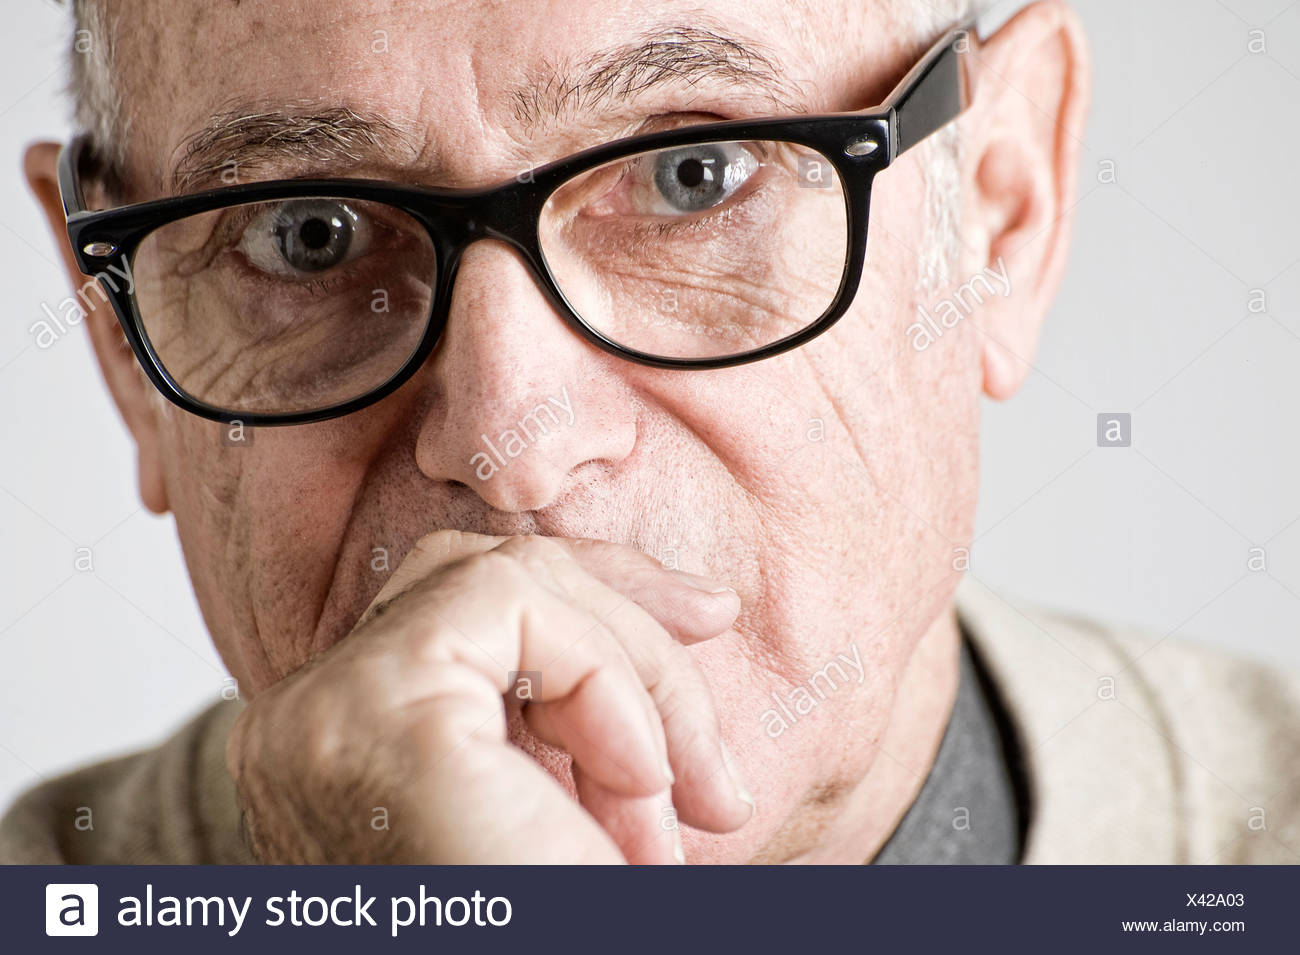 Portrait of senior man, hand on mouth - Stock Image